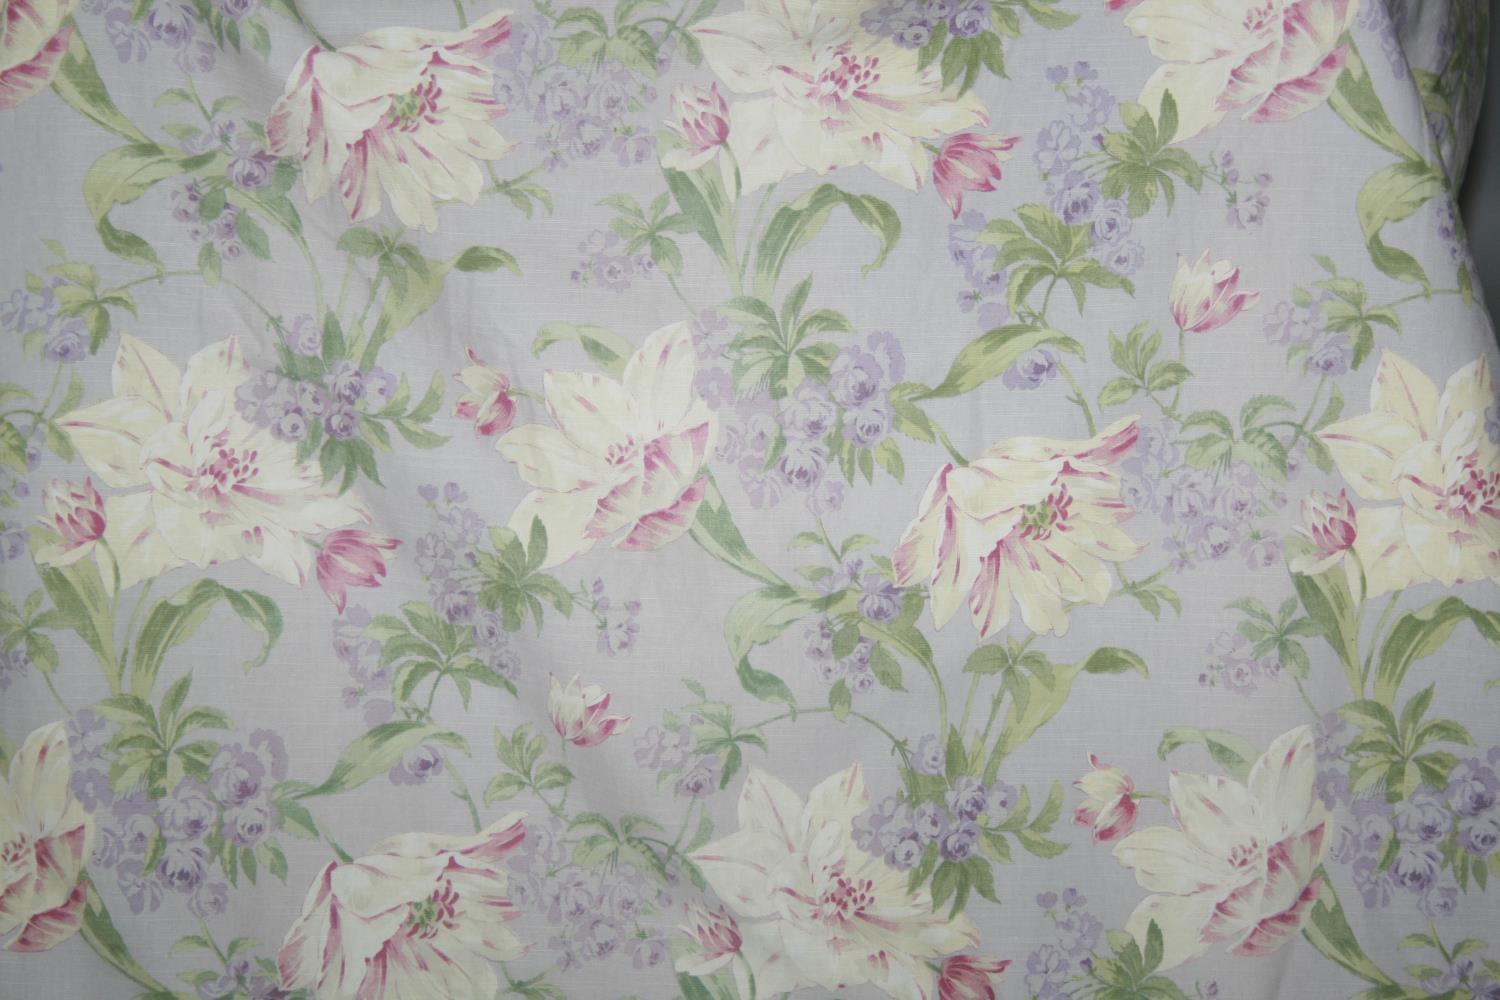 Two pairs lined curtains with floral pattern (1st pair lilac colour & 2nd pair pink) 300 W x 260 H - Image 3 of 3